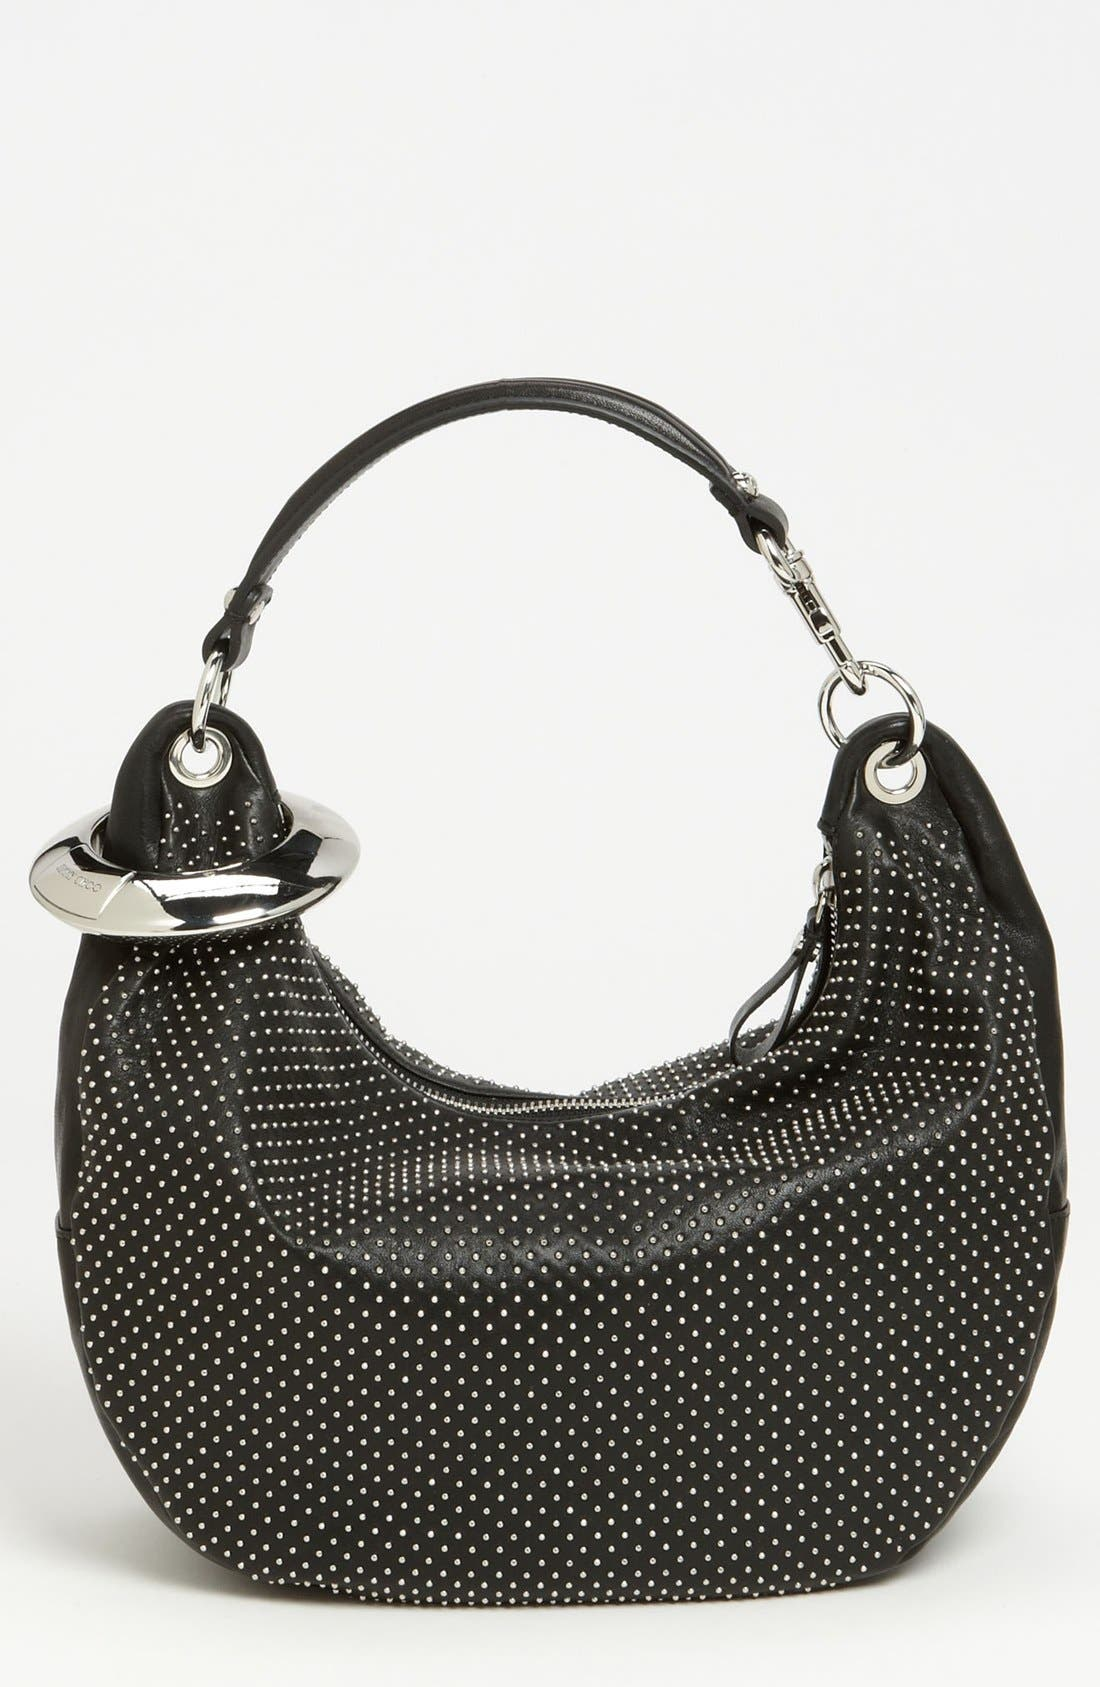 Main Image - Jimmy Choo 'Solar - Small' Studded Leather Hobo